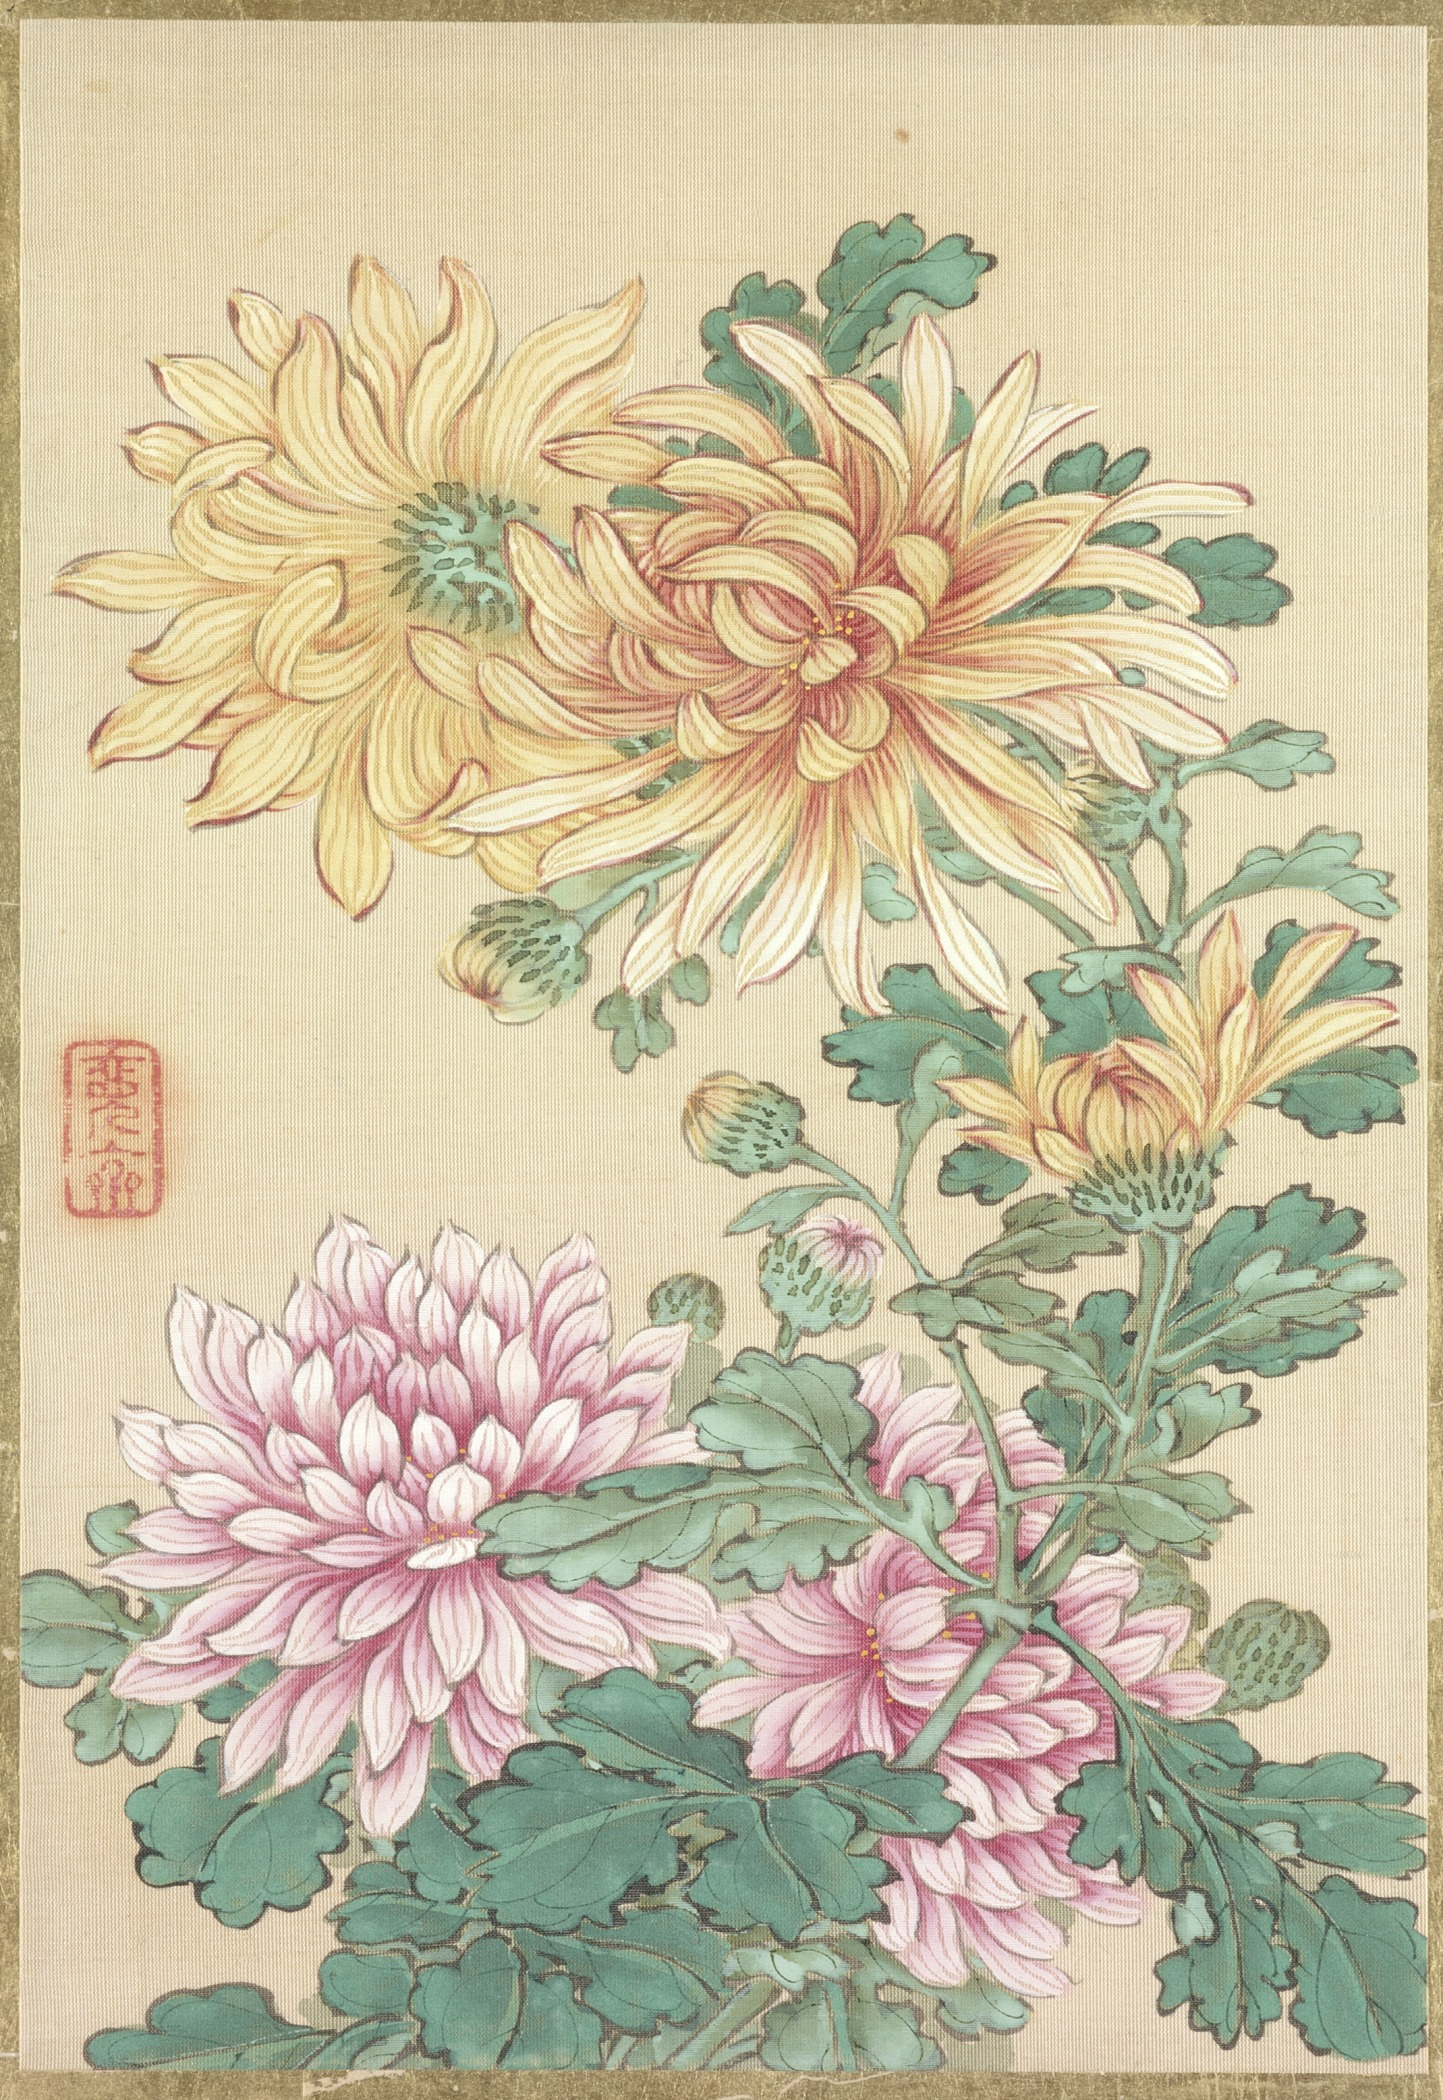 https://upload.wikimedia.org/wikipedia/commons/0/0a/Pictures_of_Flowers_and_Birds_LACMA_M.85.99_%2820_of_25%29.jpg